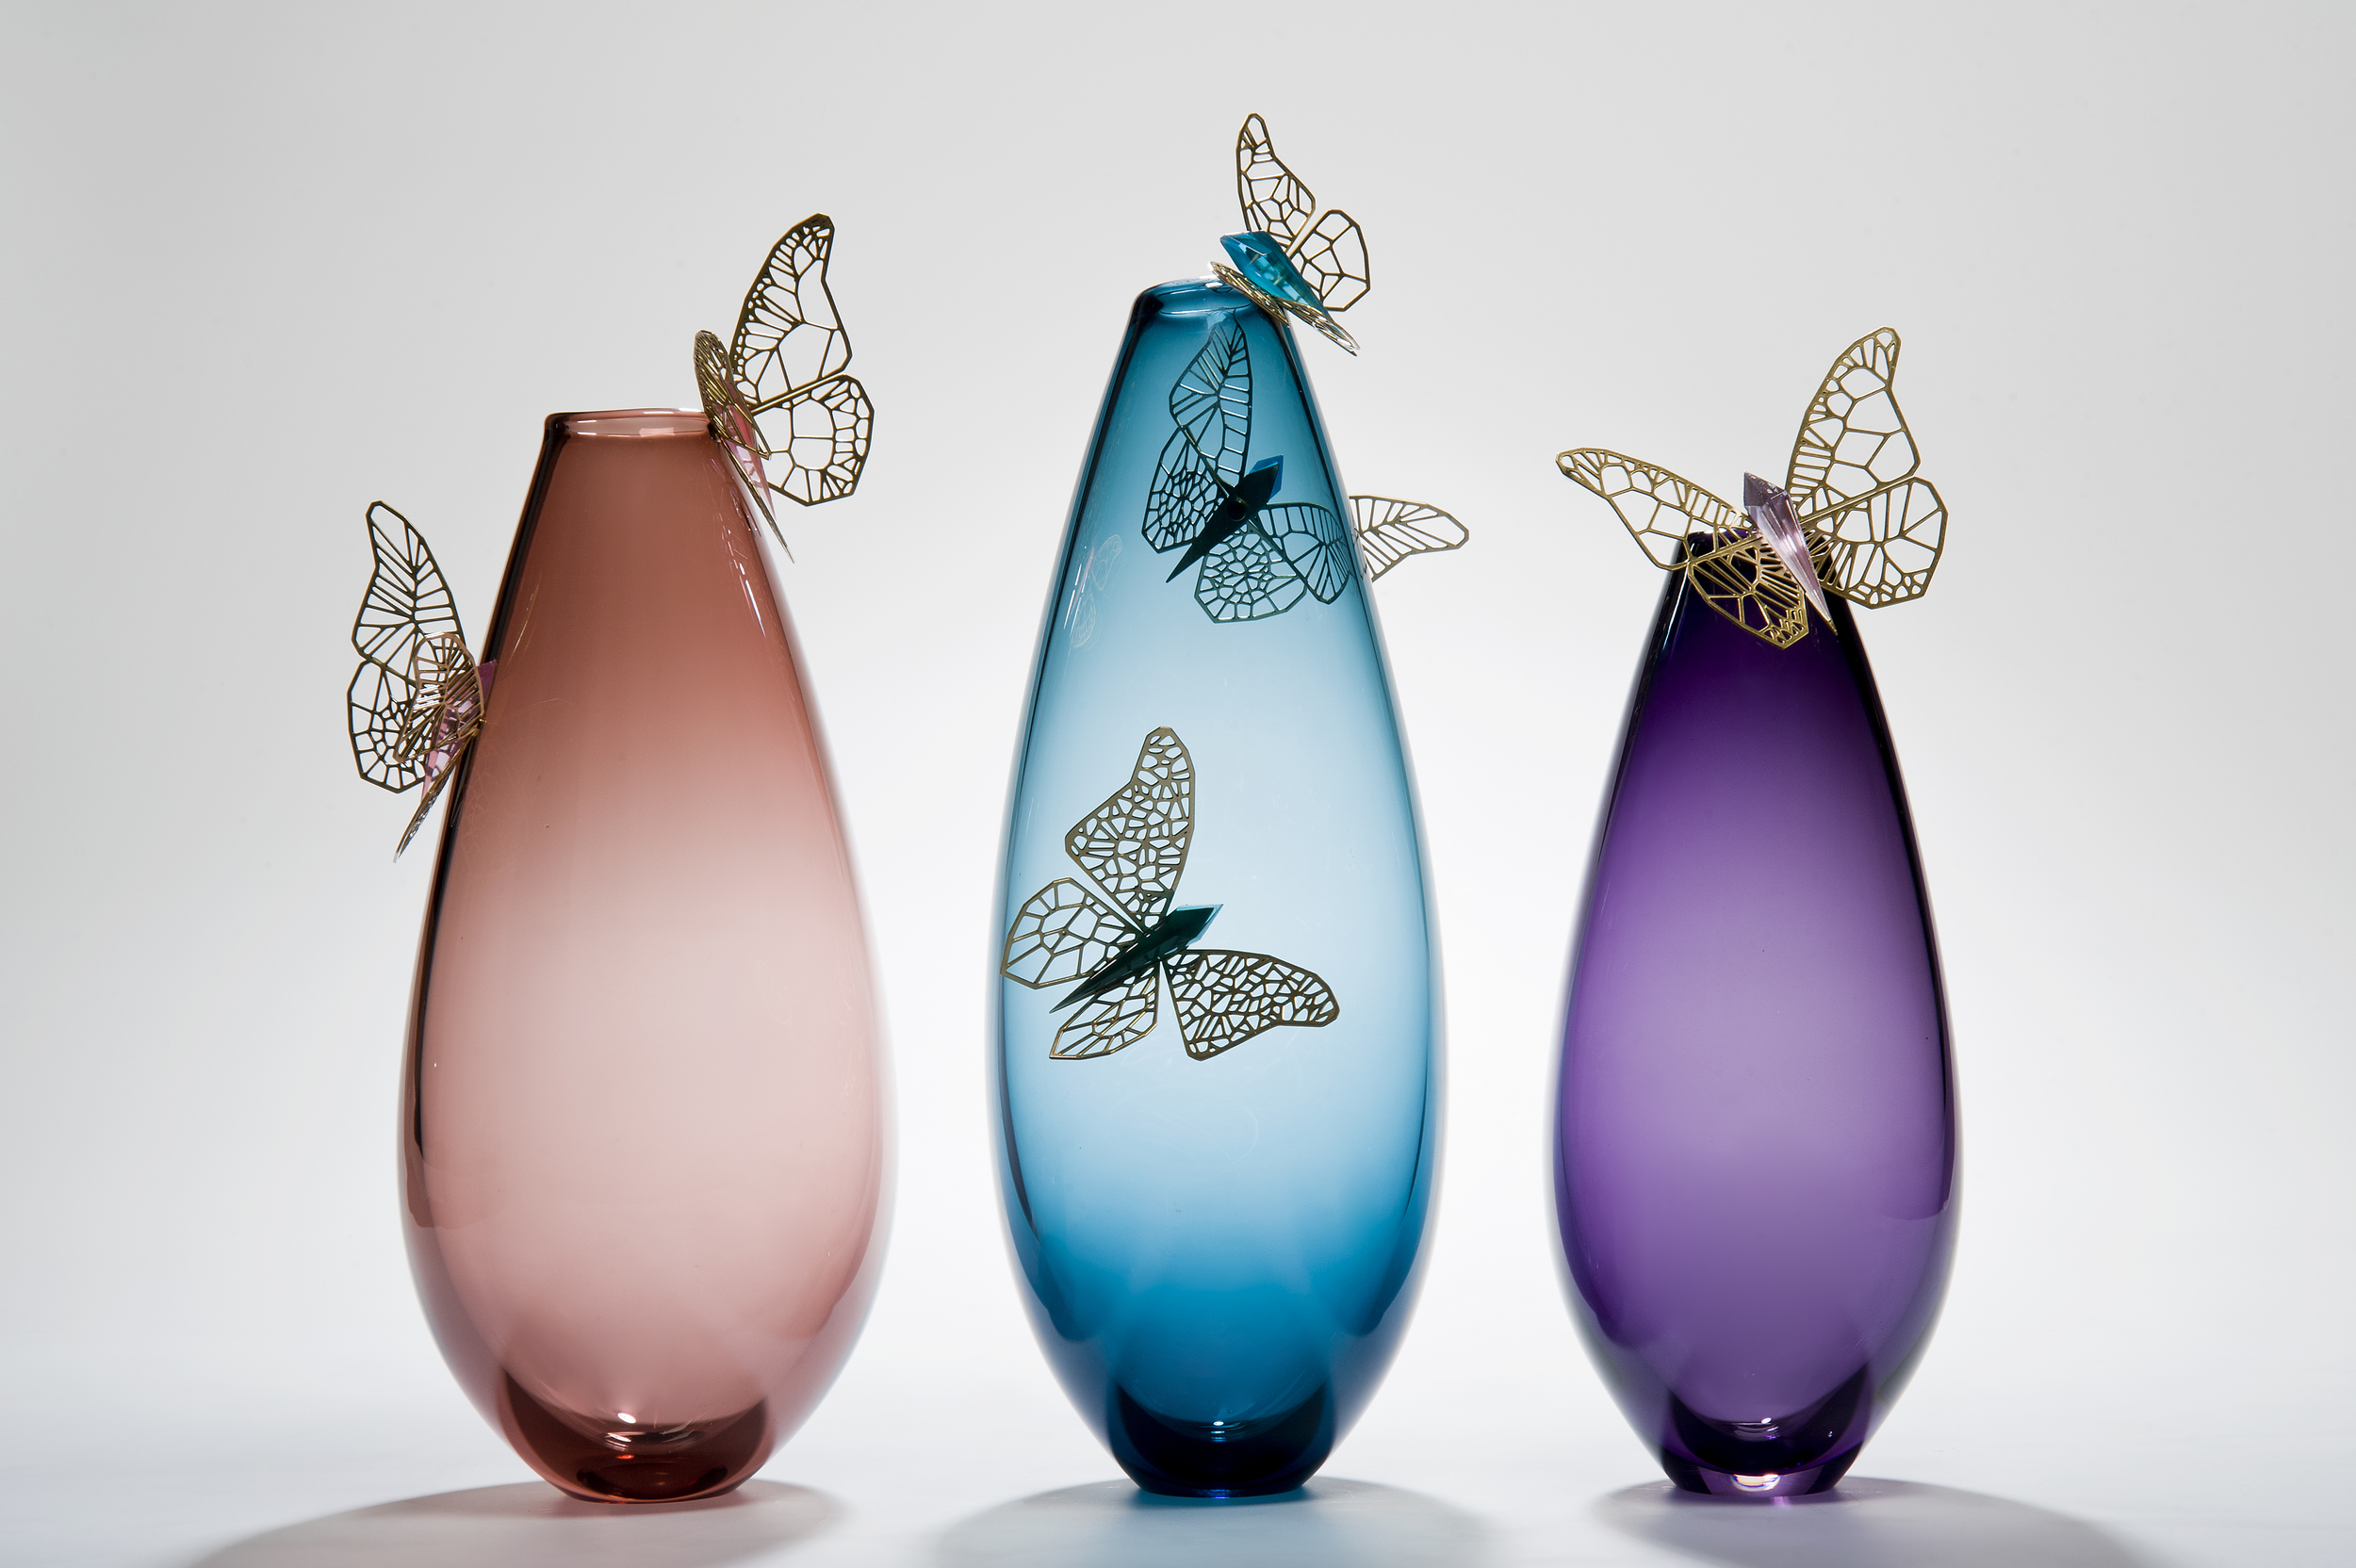 Les Ateliers Courbet Hanne Enemark Glass Blowing Shop Vessels Vases Crystal Cutting Decorative Objects